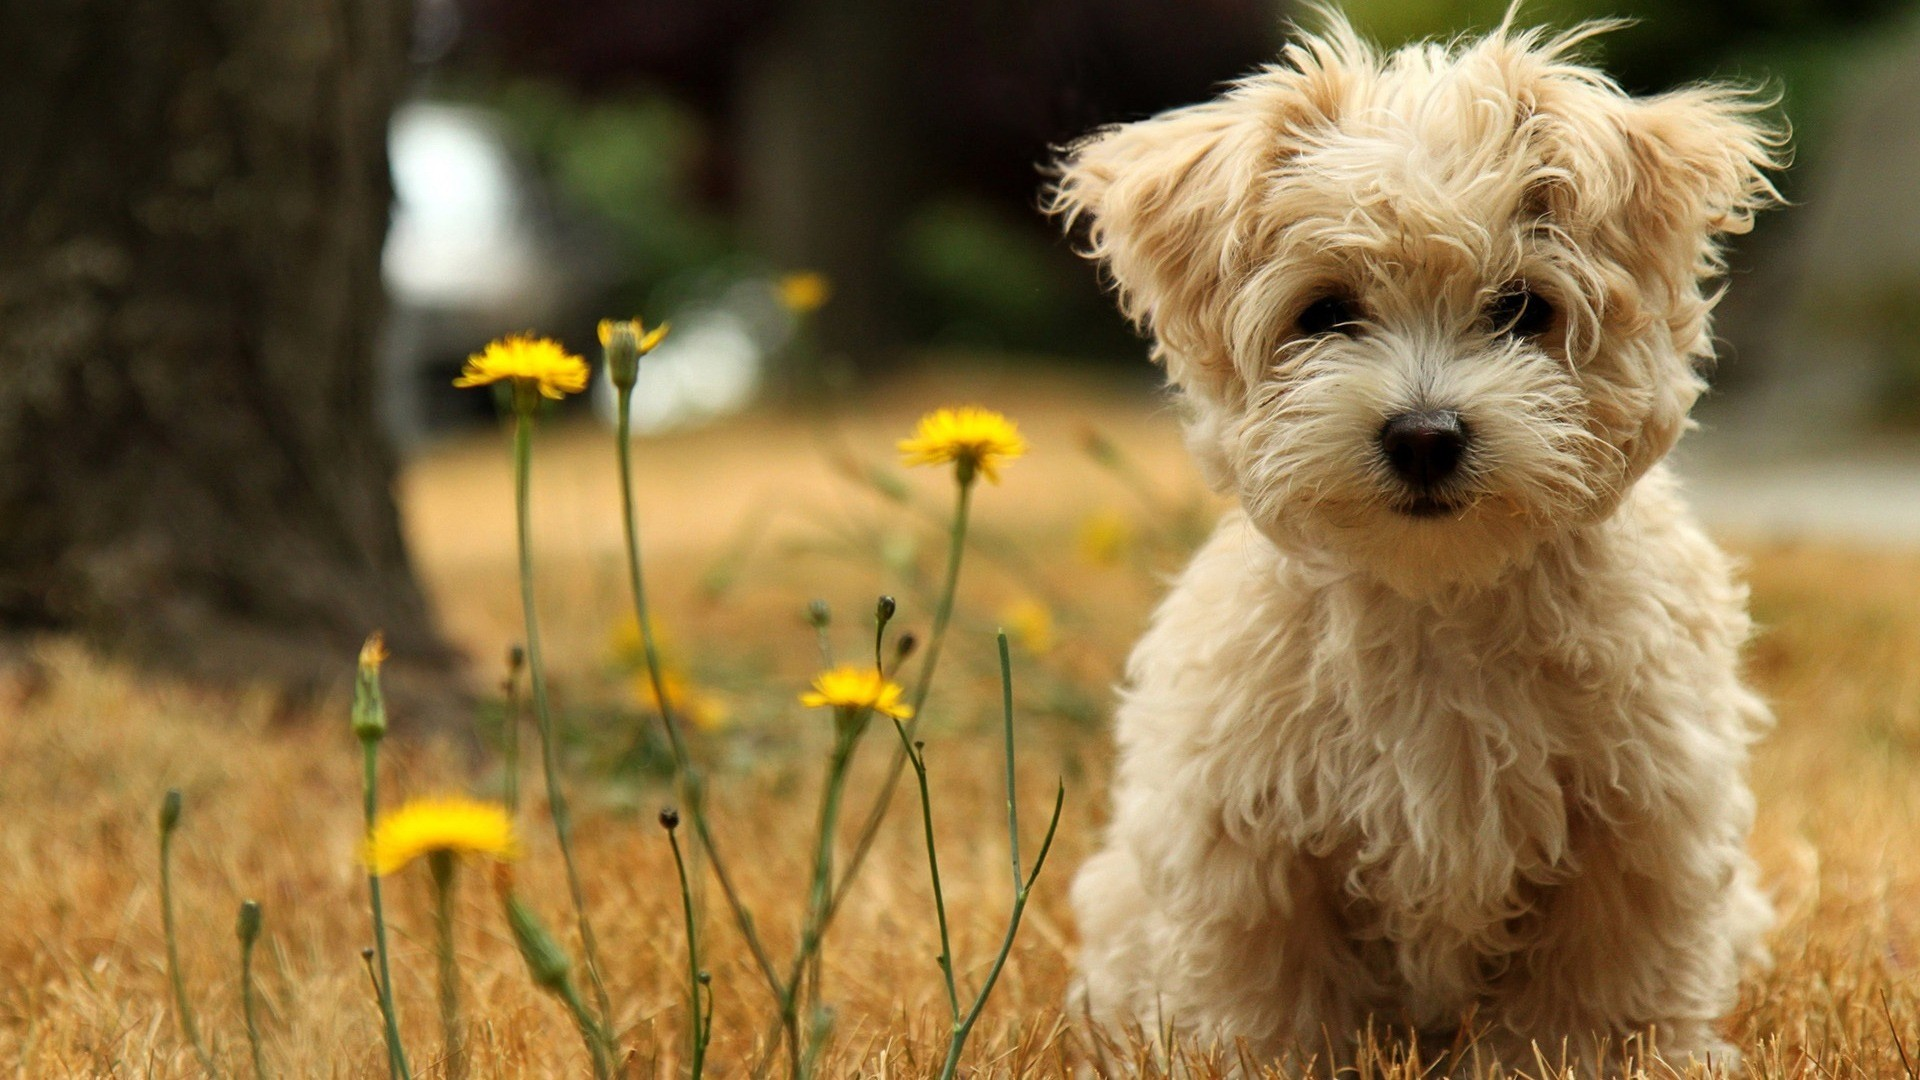 Res: 1920x1080, Free Cute Little Animals & Birds Desktop Wallpapers in HD Resolutions -  Page 1